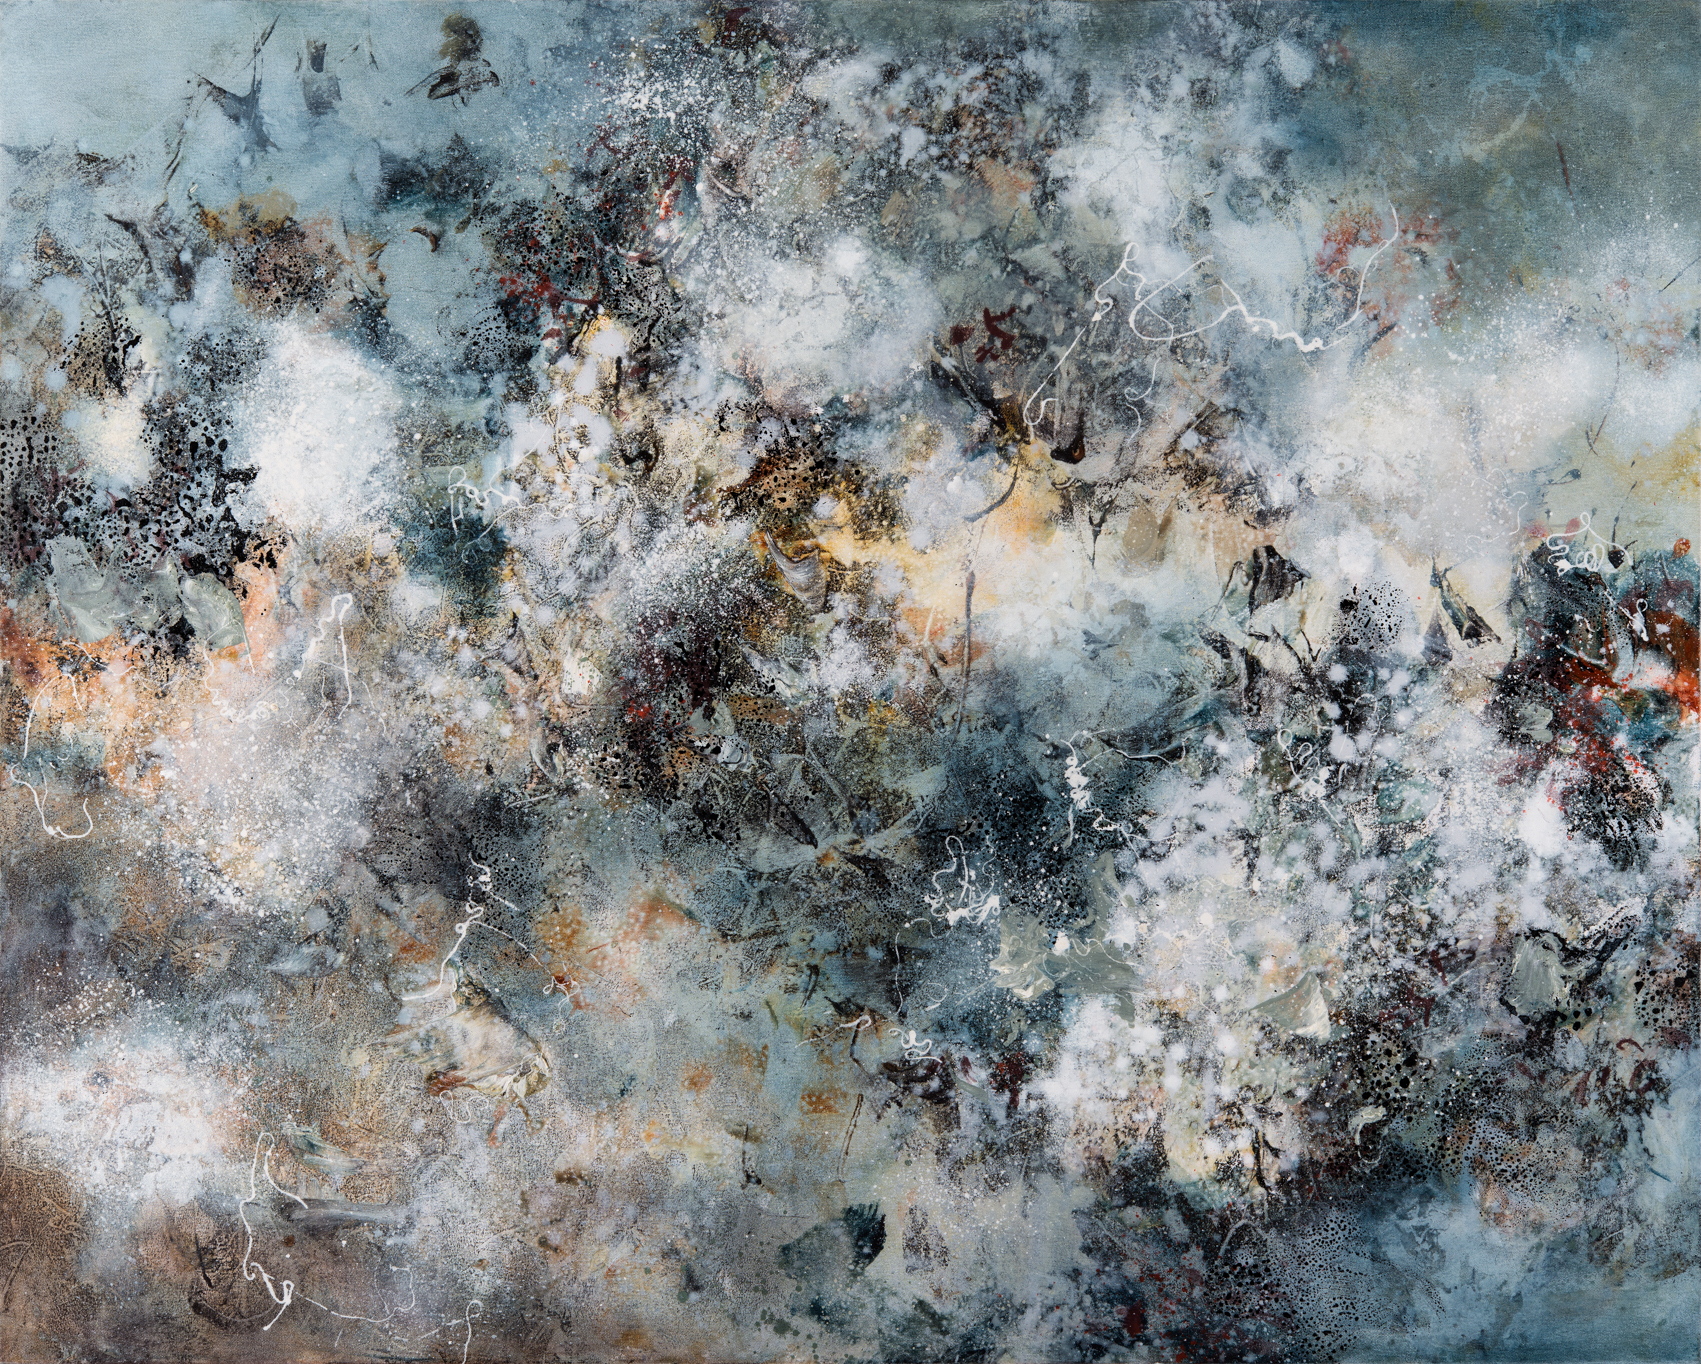 Turbulence, oil on canvas, 102 x 127 cm, SOLD